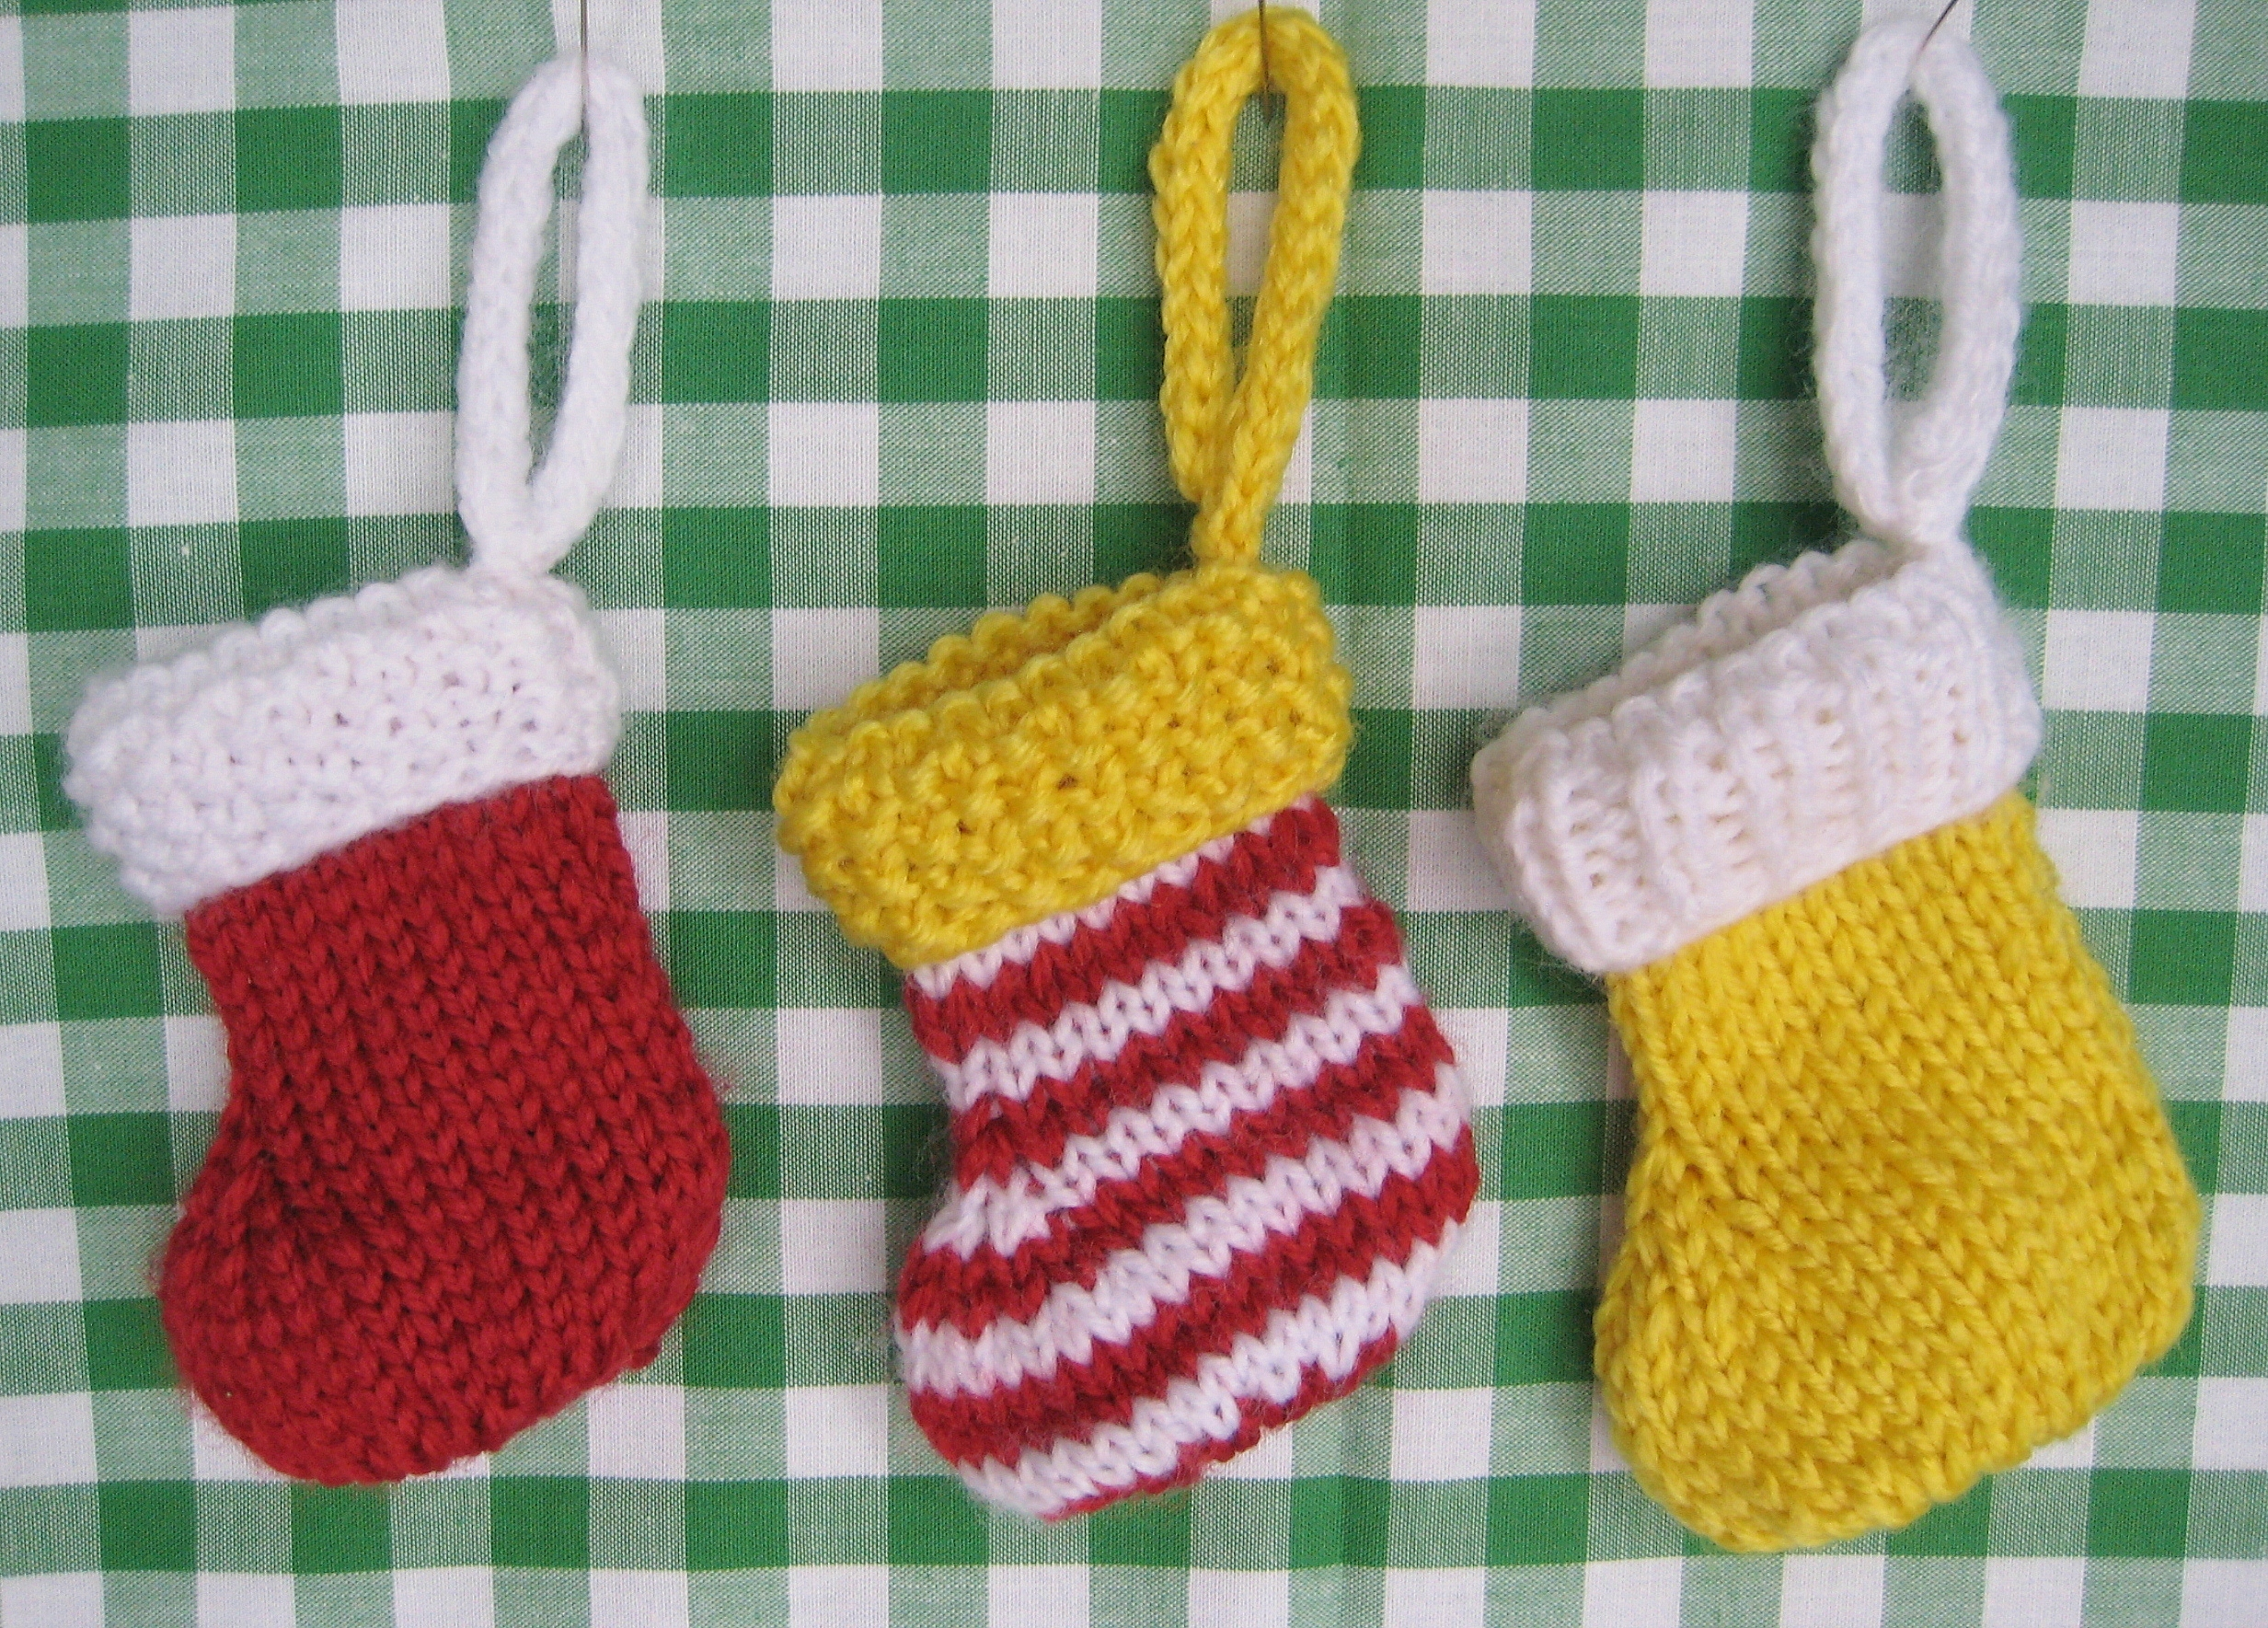 Knitting patterns galore little christmas stocking for beginners little christmas stocking for beginners free knitting pattern little christmas stocking for beginners bankloansurffo Gallery